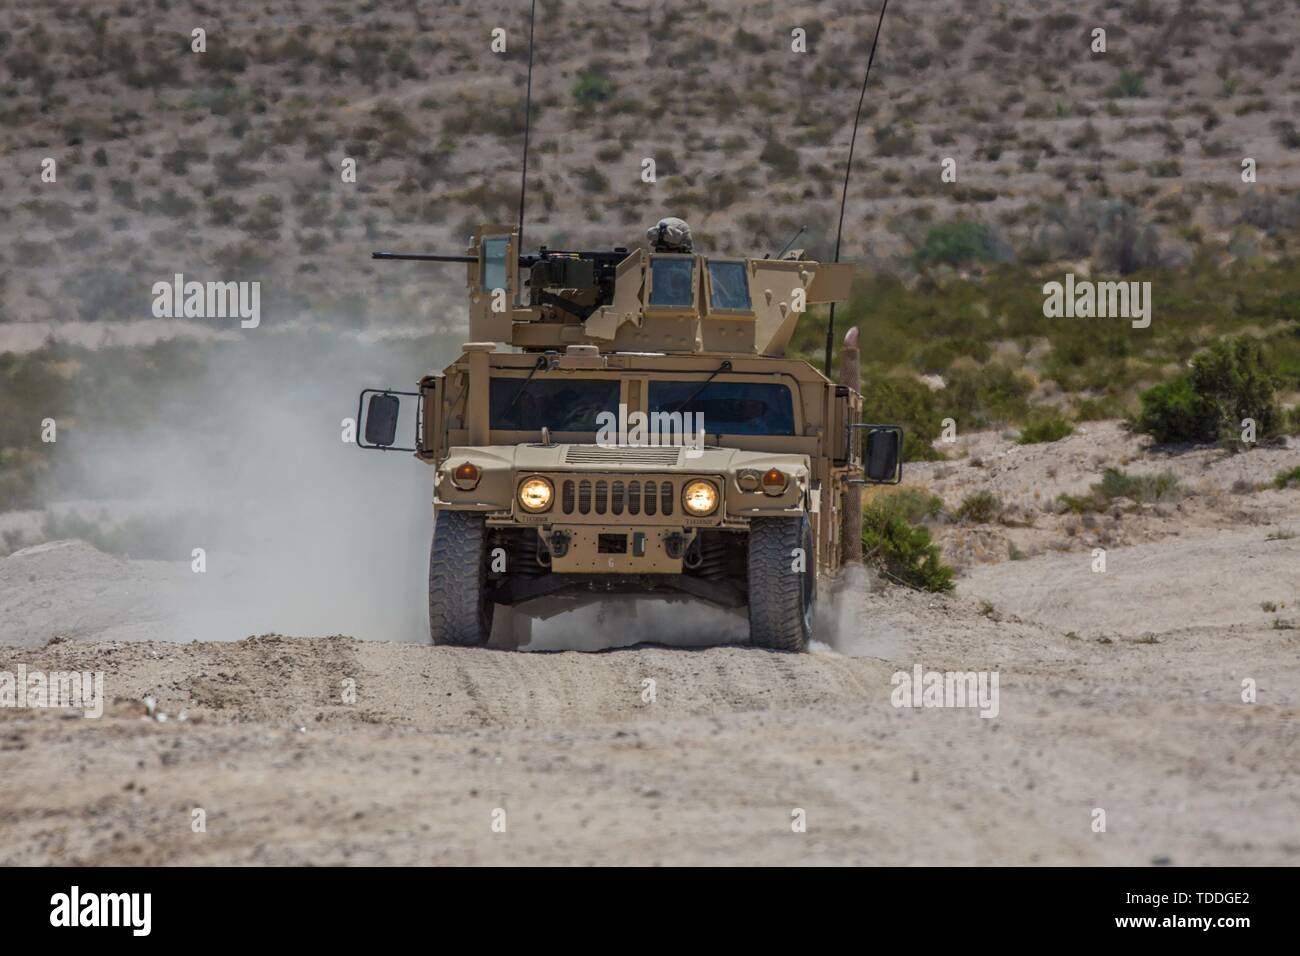 A Humvee with Engineer Company, Combat Logistics Battalion 23, 4th Marine Logistics Group, provides security for the main attack body of the mechanized assault course during Integrated Training Exercise 4-19 at Marine Corps Air Ground Combat Center, Twentynine Palms, Calif., June 12, 2019. Marine Forces Reserve units participate in ITX to both complete annual training requirements and to increase unit readiness and proficiency. (U.S. Marine Corps photo by Lance Cpl. Preston L. Morris) Stock Photo